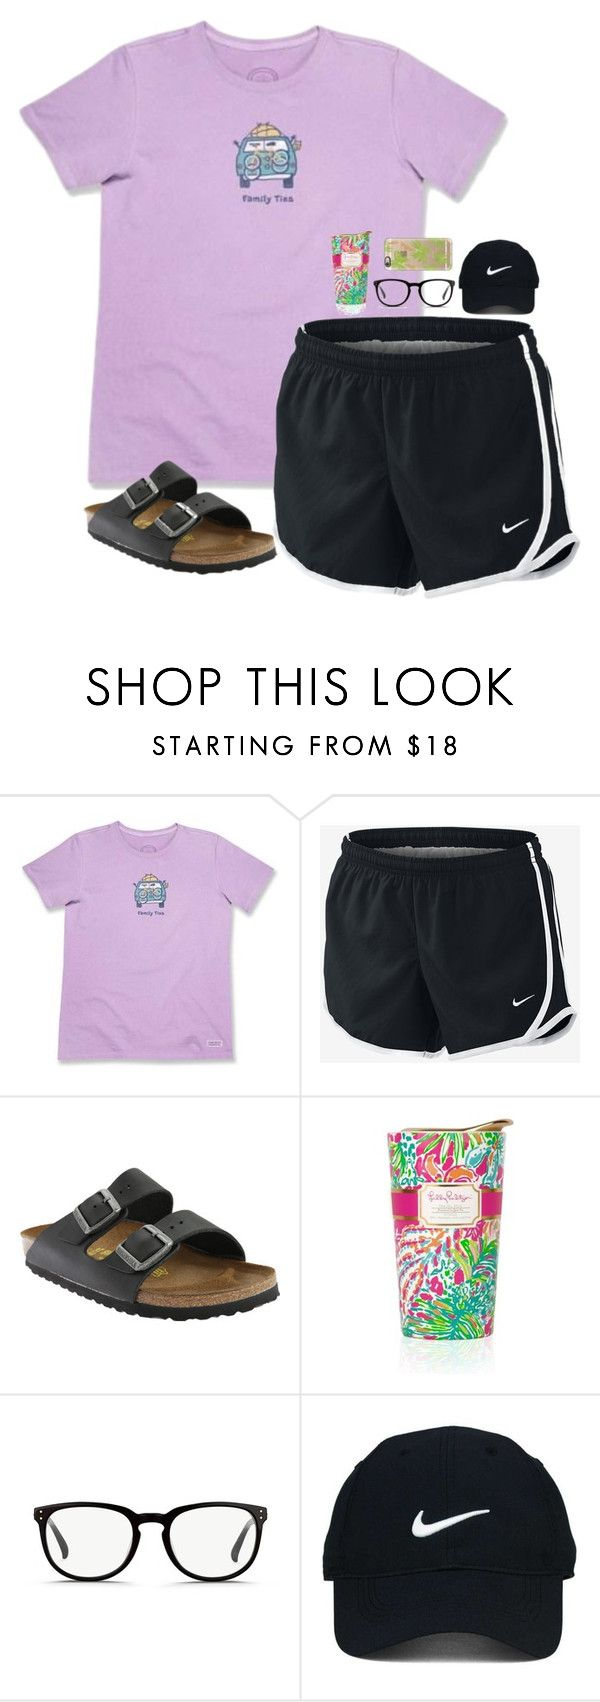 """Classic prep"" by sydneefashion ❤ liked on Polyvore featuring Life is good, NIKE, Birkenstock, Lilly Pulitzer, Linda Farrow, Nike Golf and Casetify"